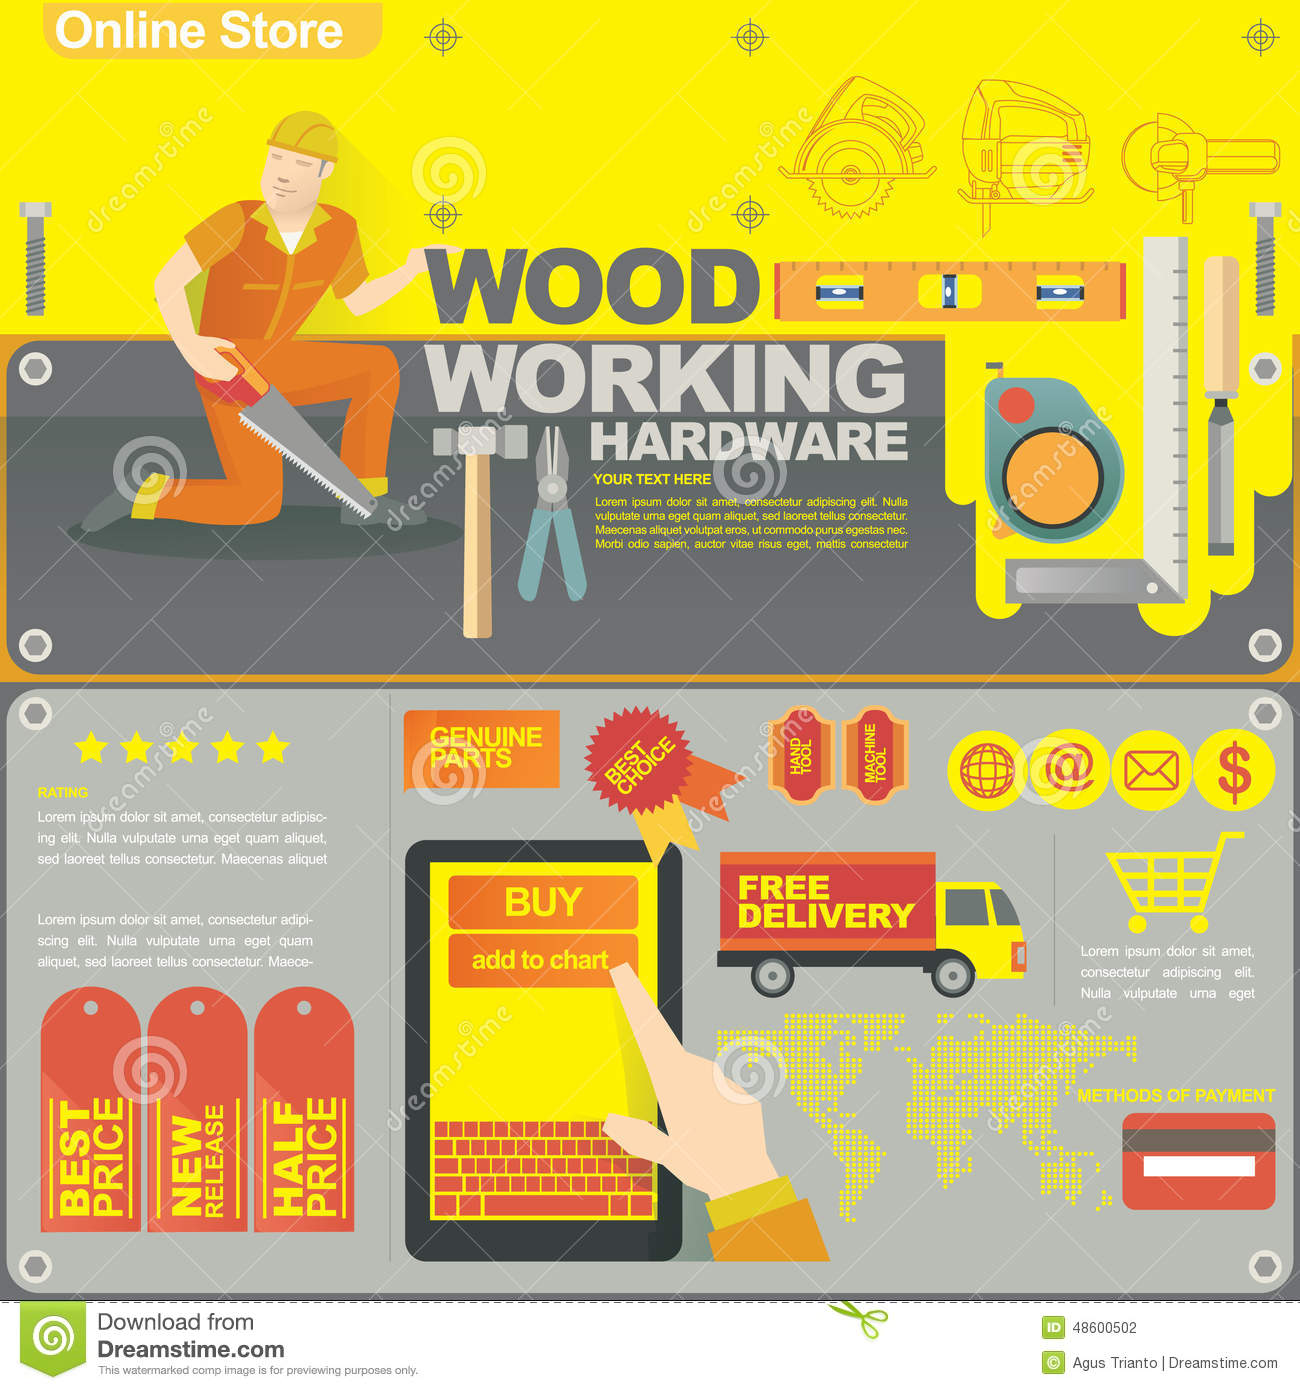 online woodworking store